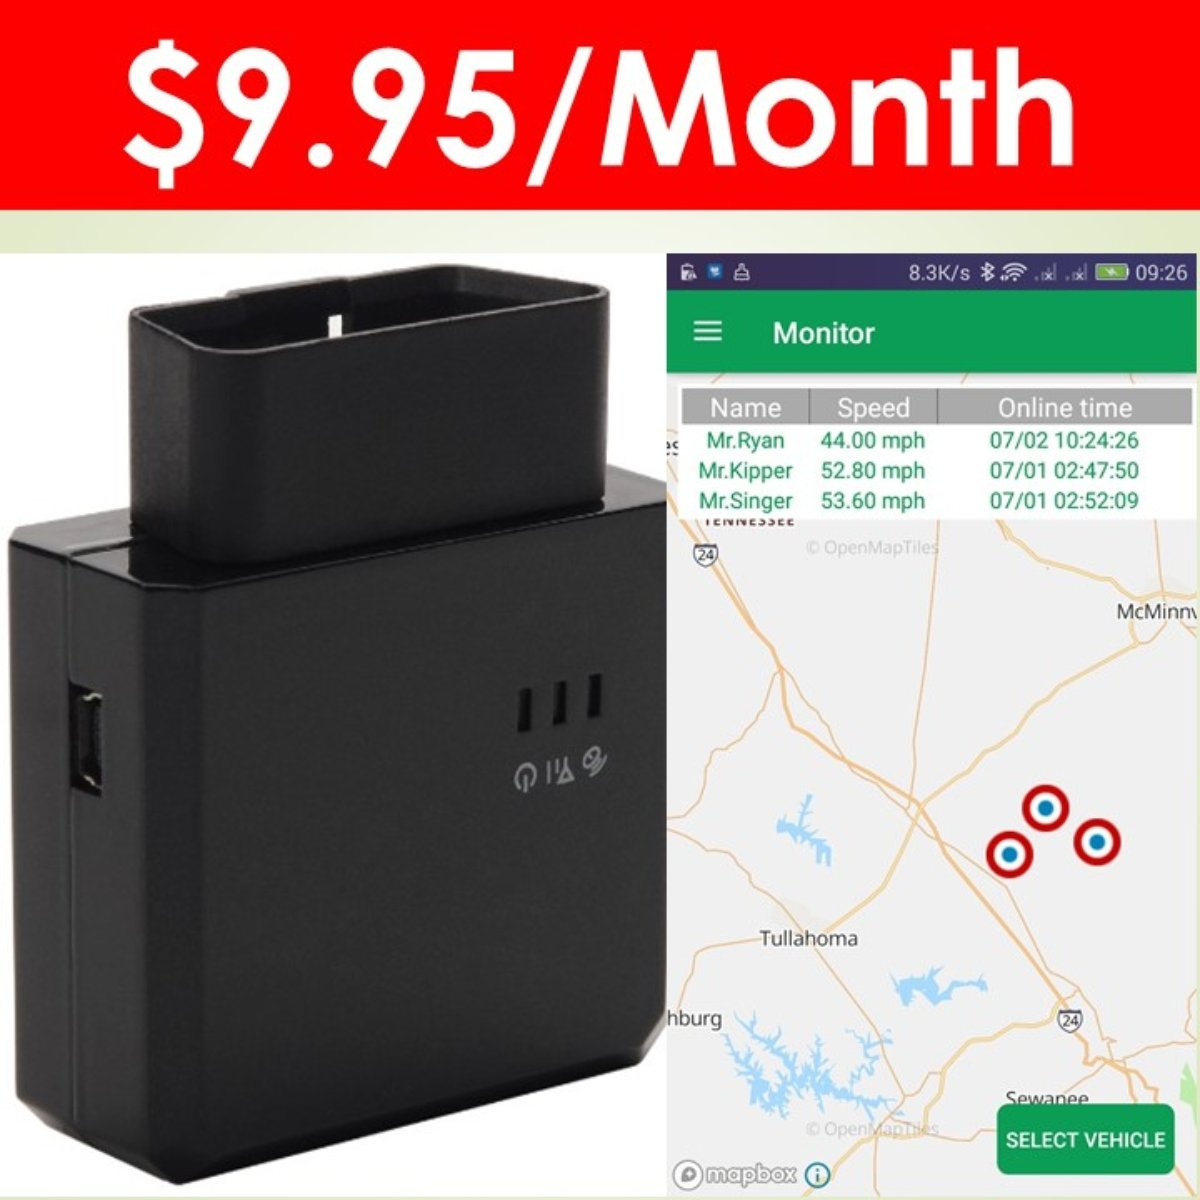 Spectrum SMART: 3G OBD II, GPS Tracker for Vehicles, Teen Driver Tracker, Car Tracking Device and Car Locator, Fleet Tracking Device, Real Time GPS Tracker, No Contact. $9.95/Month